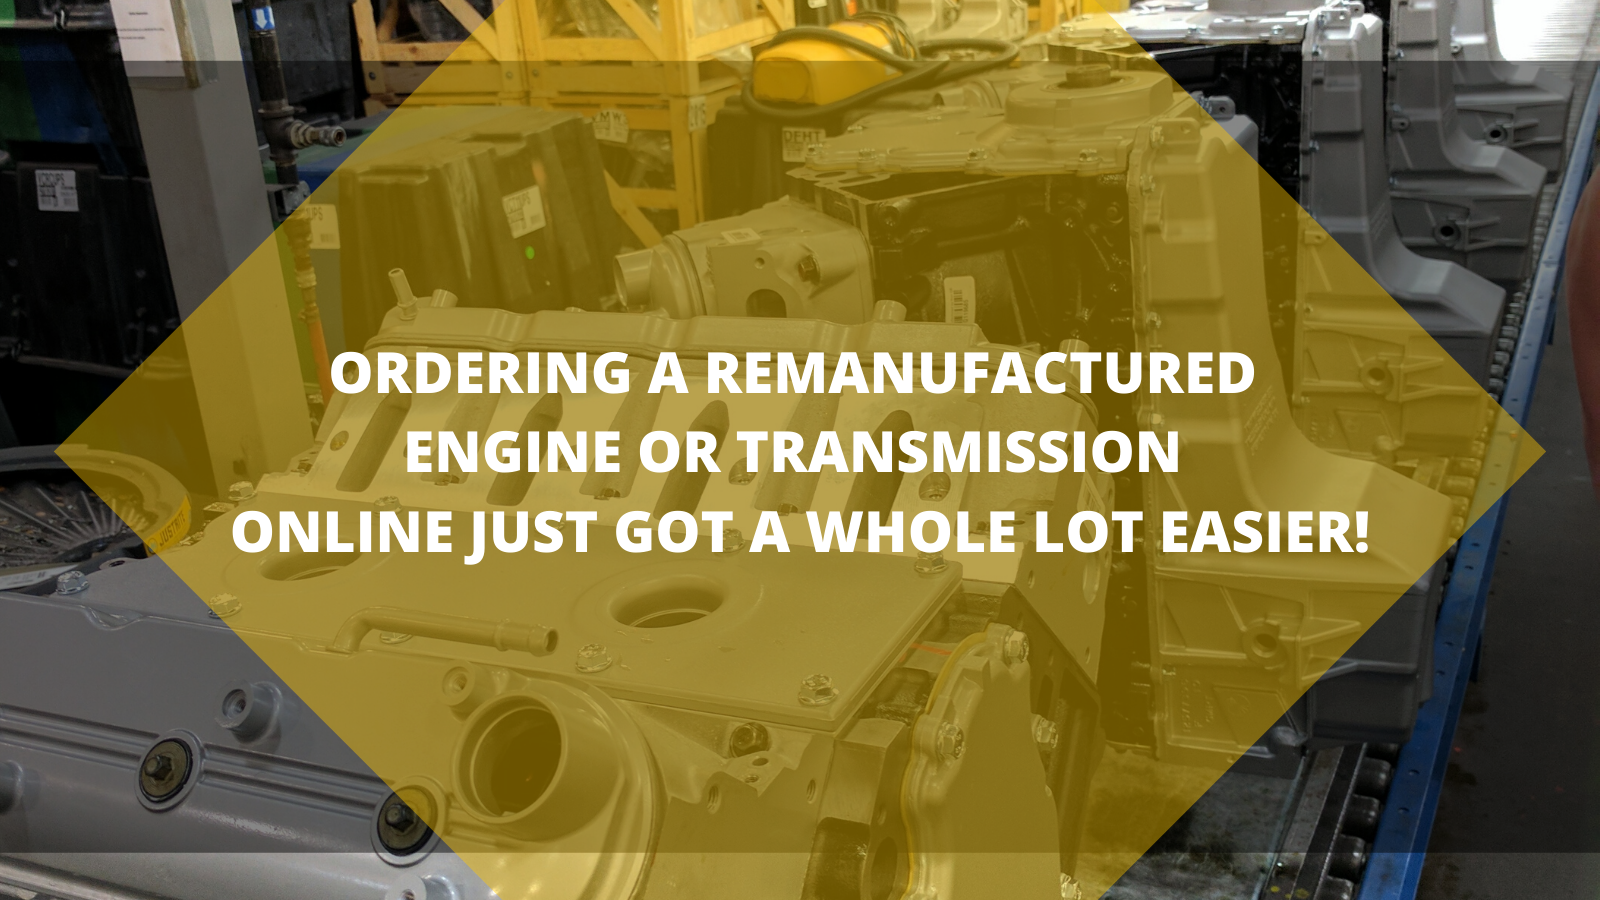 Ordering A remanufactured engine or Transmission online just got a whole lot easier!